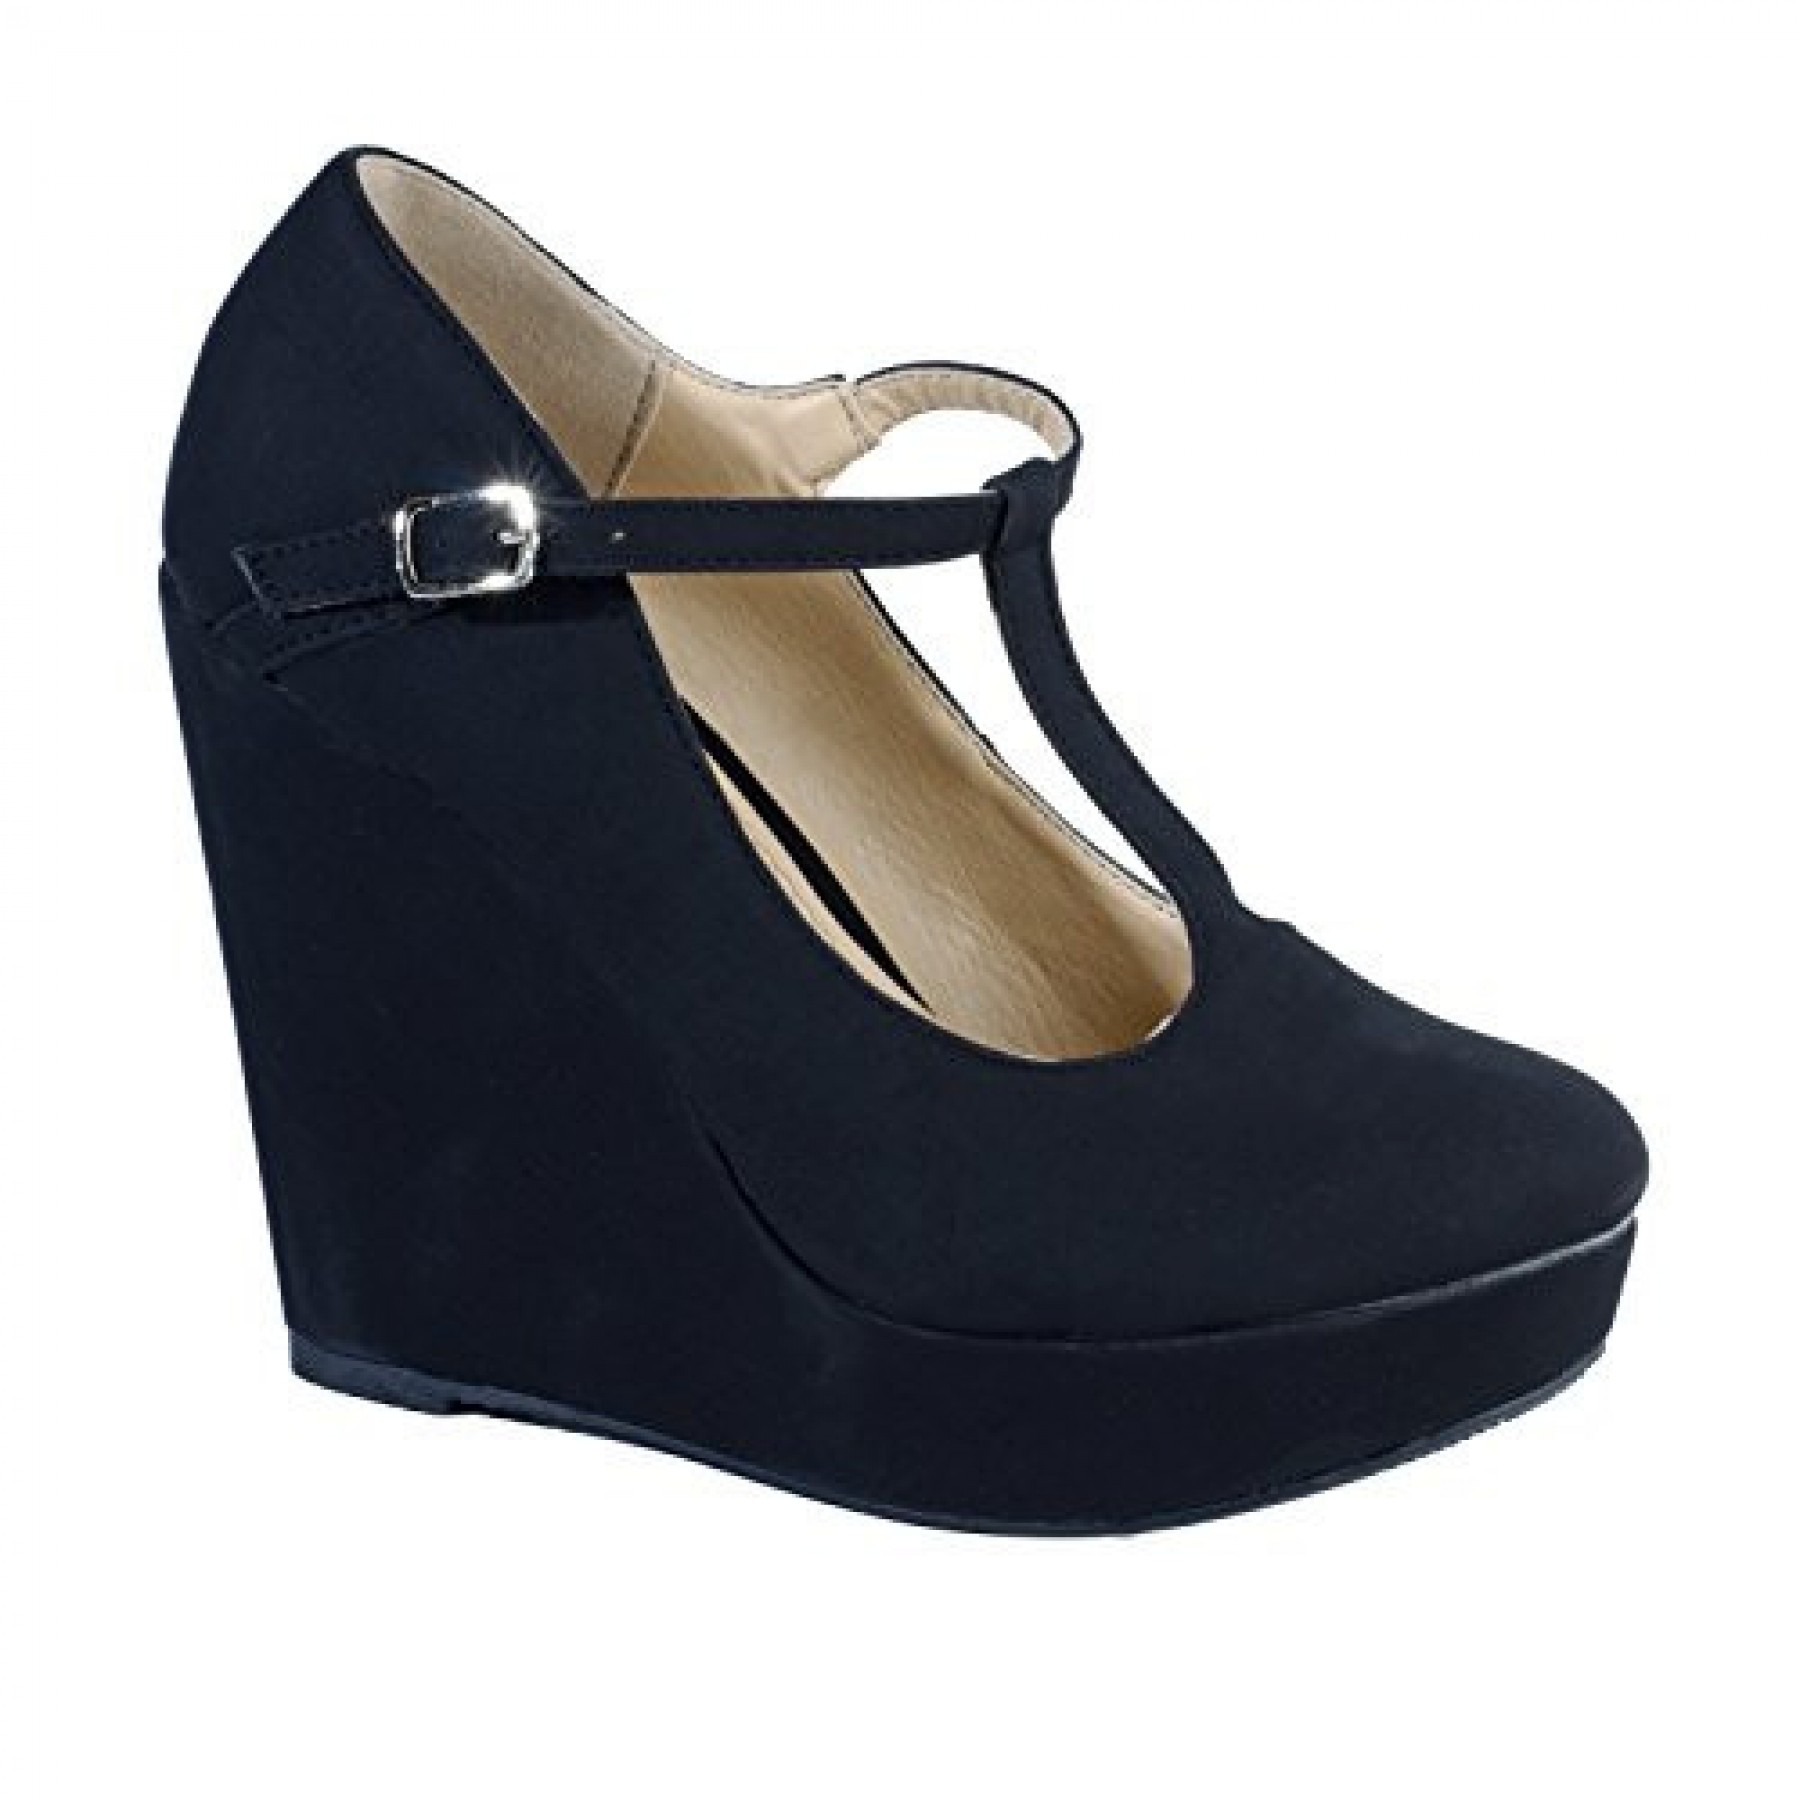 Women's Black Catie Manmade High T-Strap Wedge with Brilliant Buckle